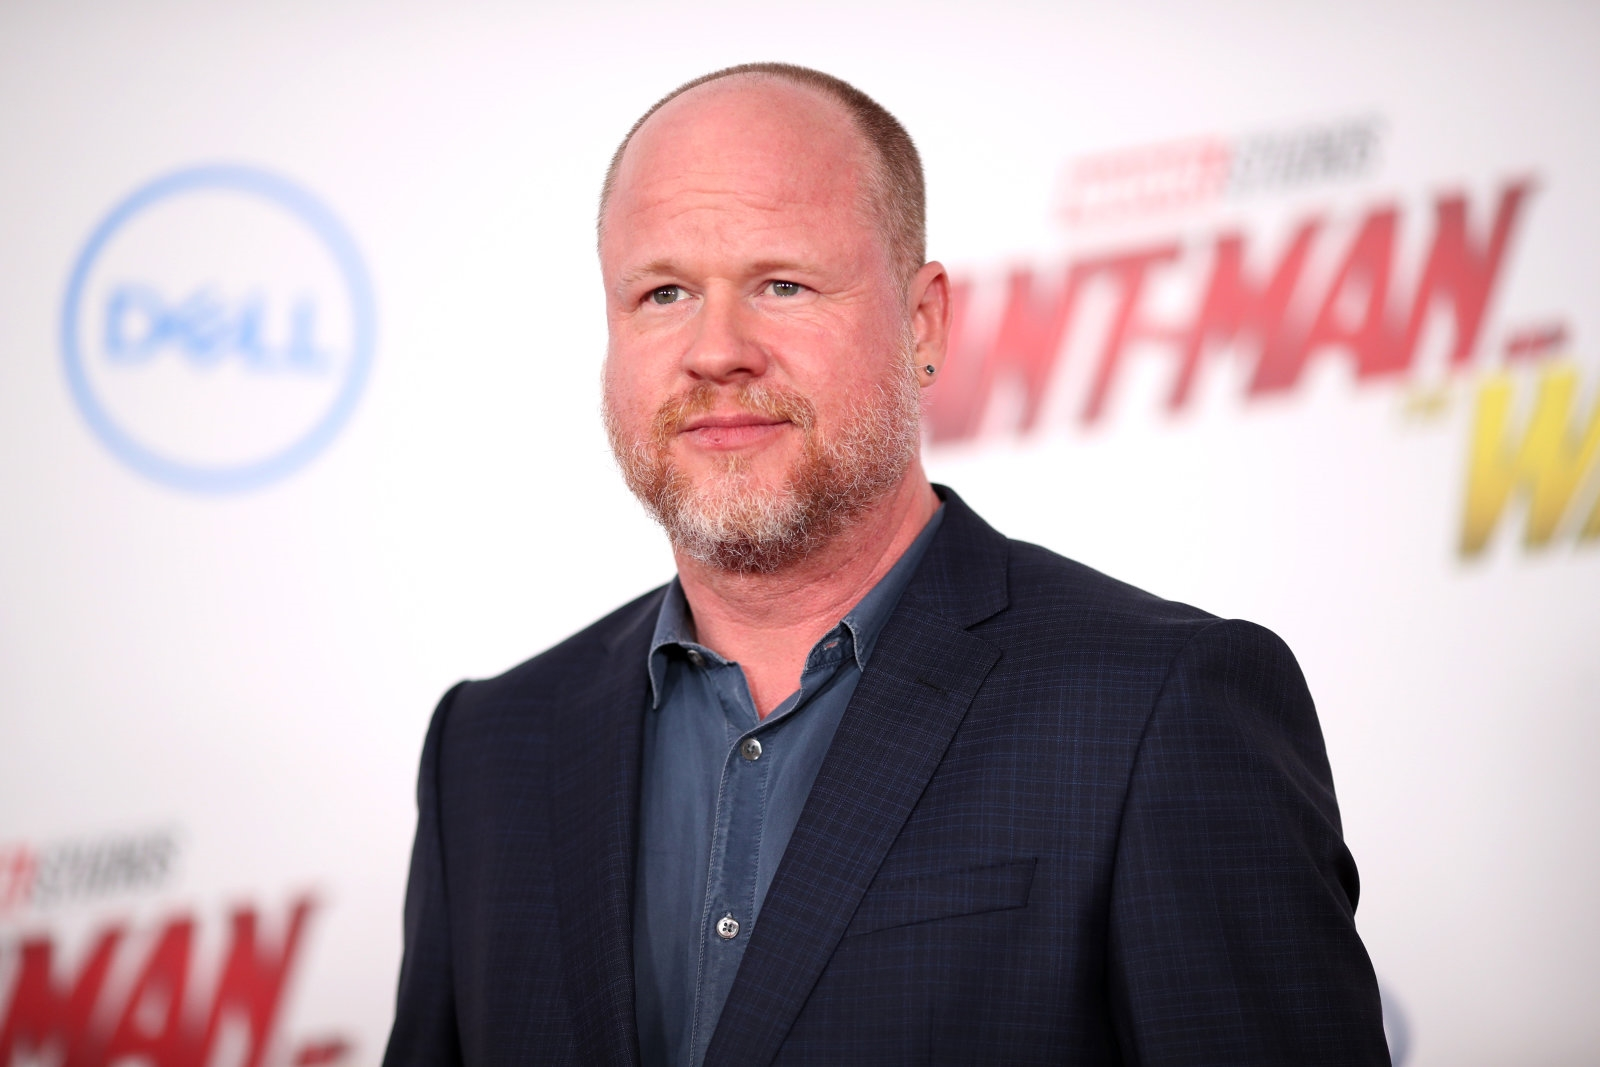 Joss Wheedon returns to TV with HBO's sci-fi drama, 'The Nevers' | DeviceDaily.com